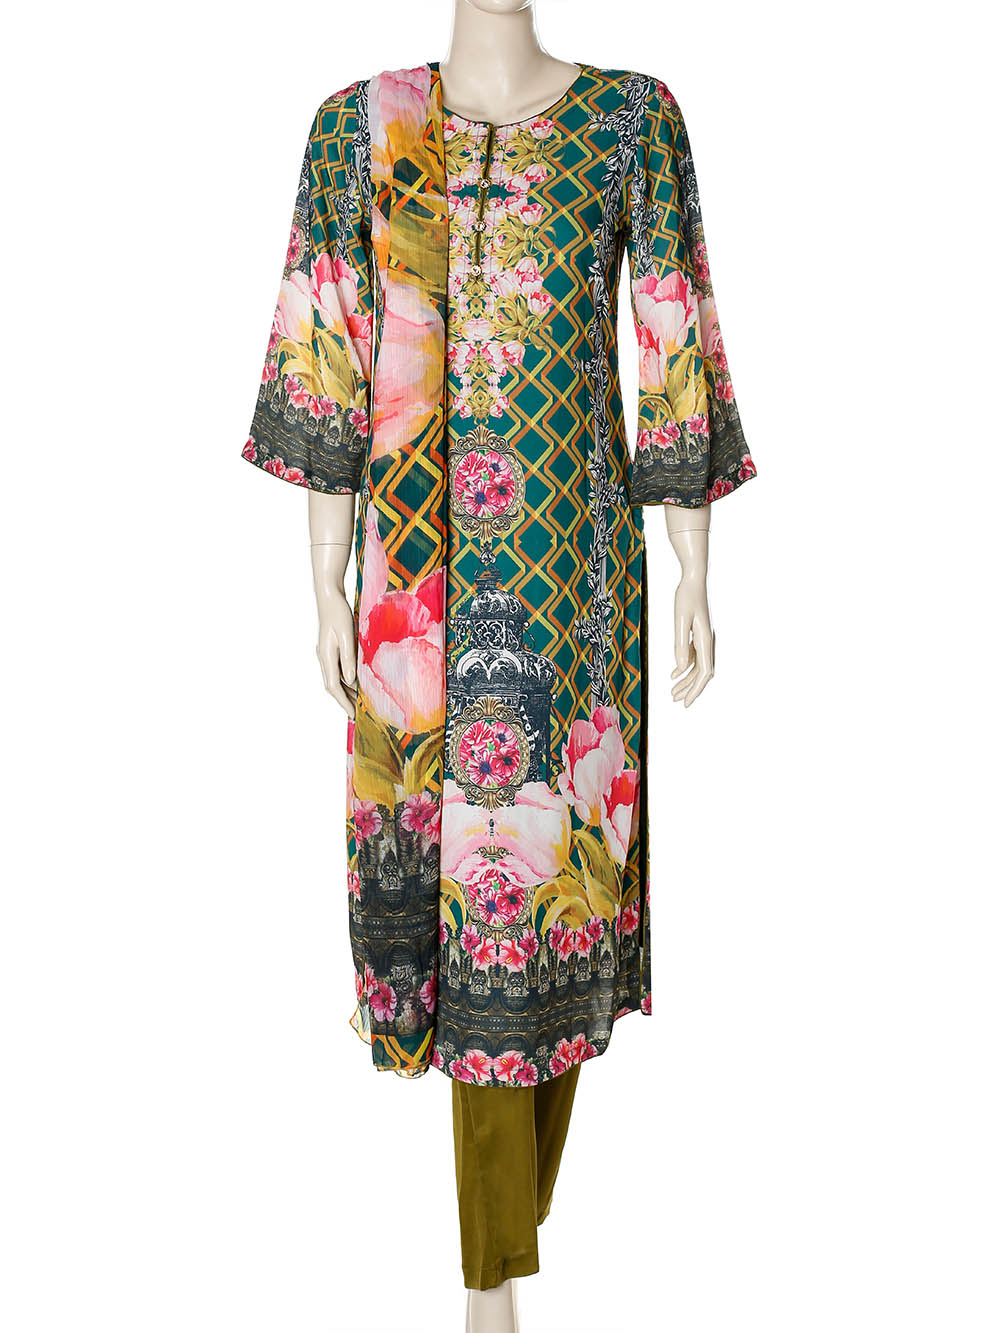 LADIES ETHNIC 3 PCS